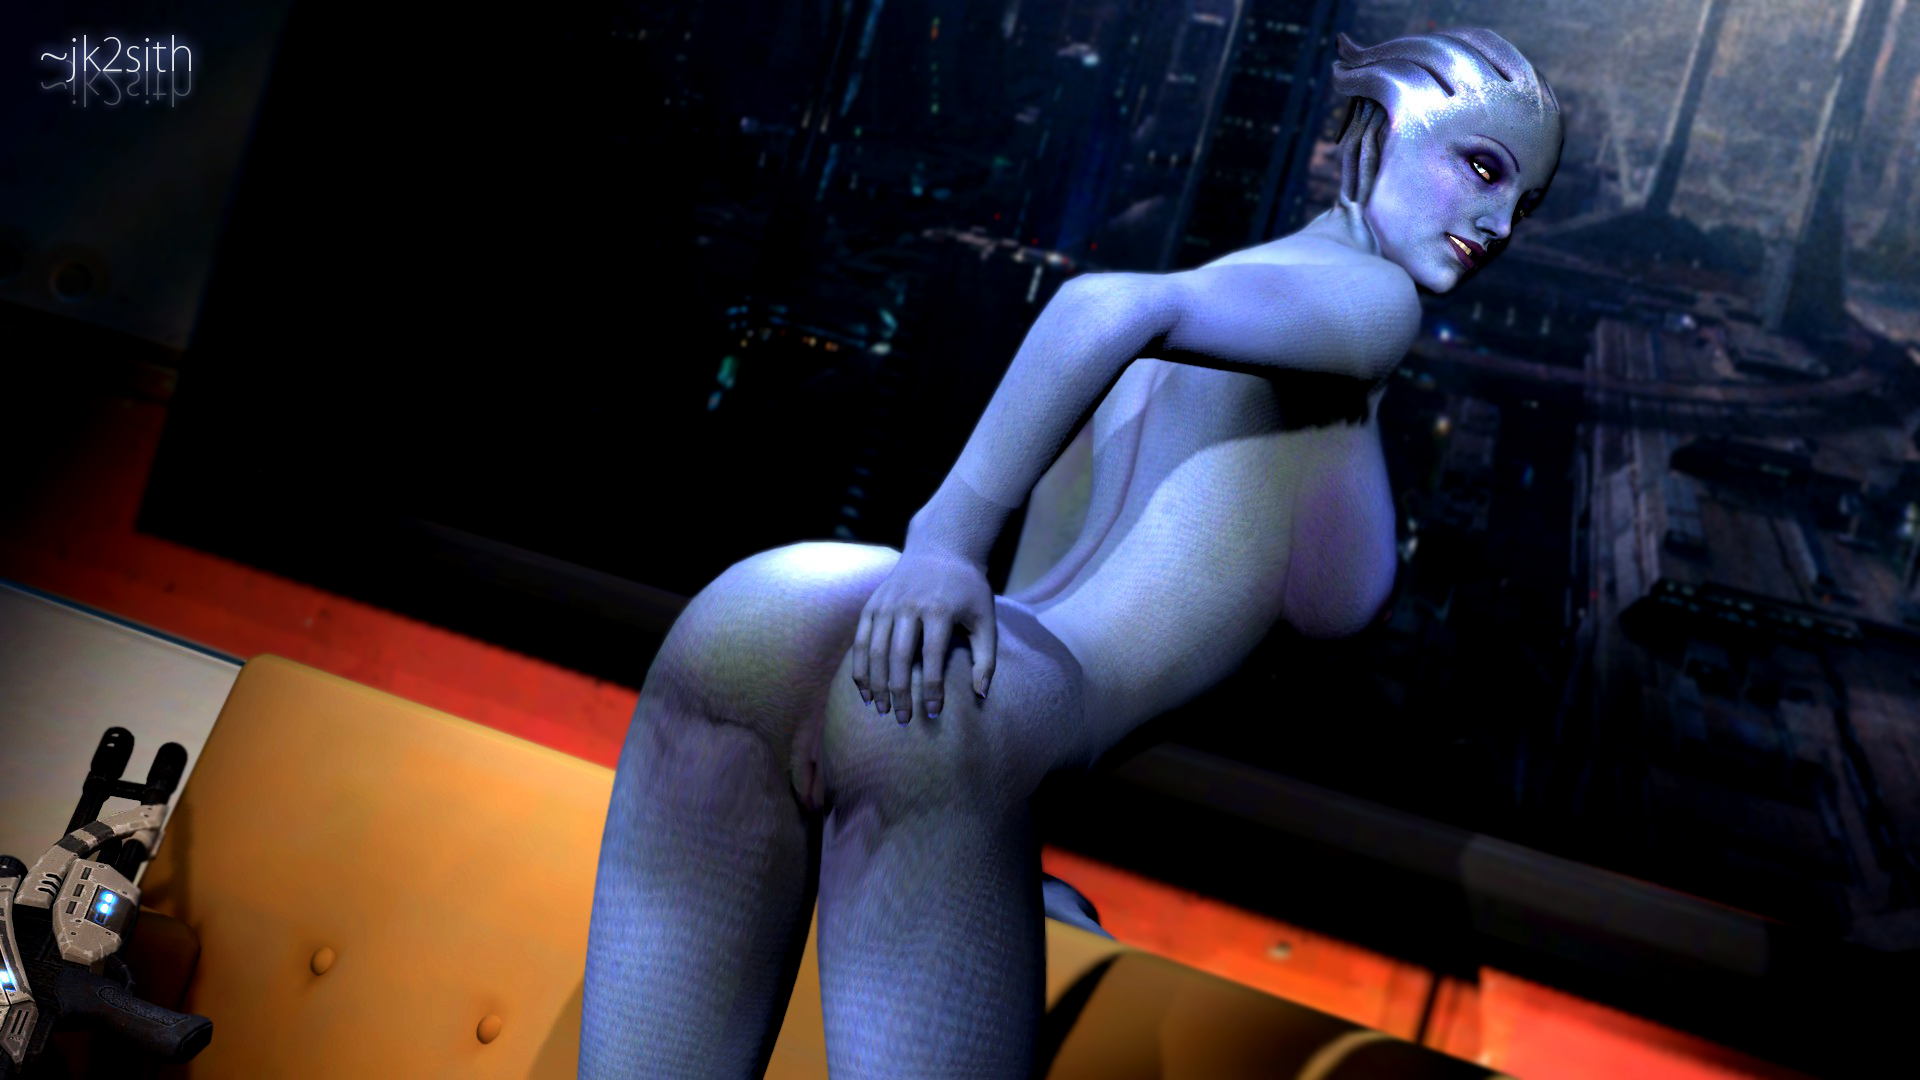 Mass effect male nude characters softcore toons